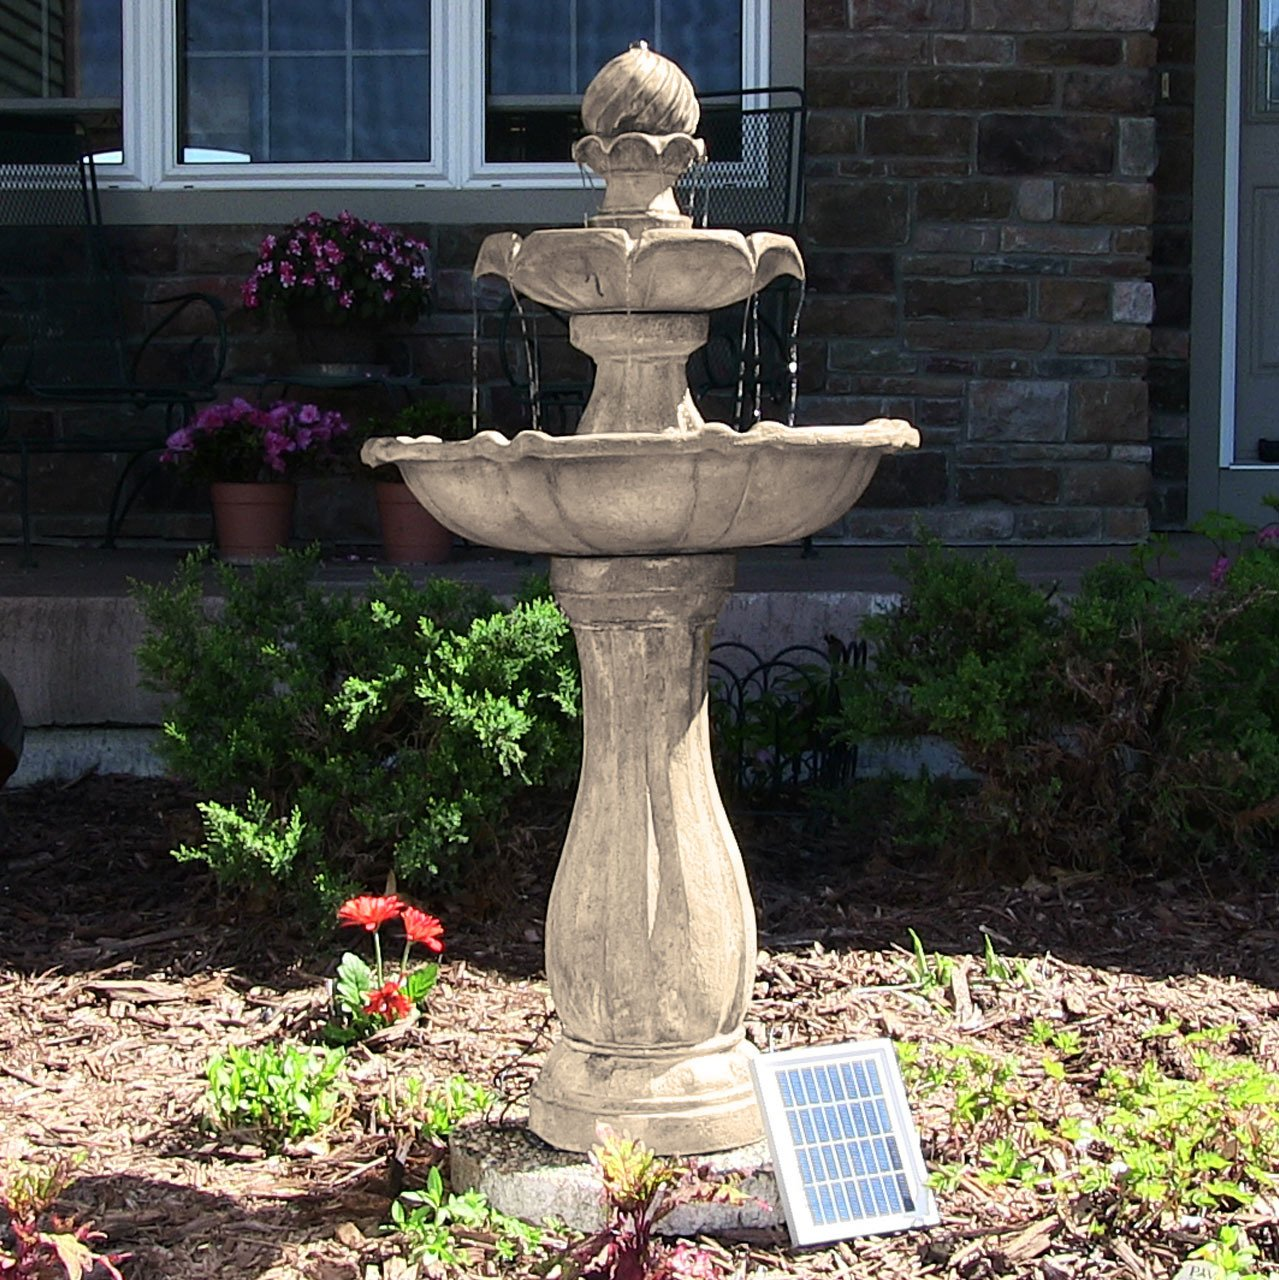 Sunnydaze 2-Tier Arcade Outdoor Solar Power Water Fountain with LED Light, Earth Finish, 45 Inch Tall